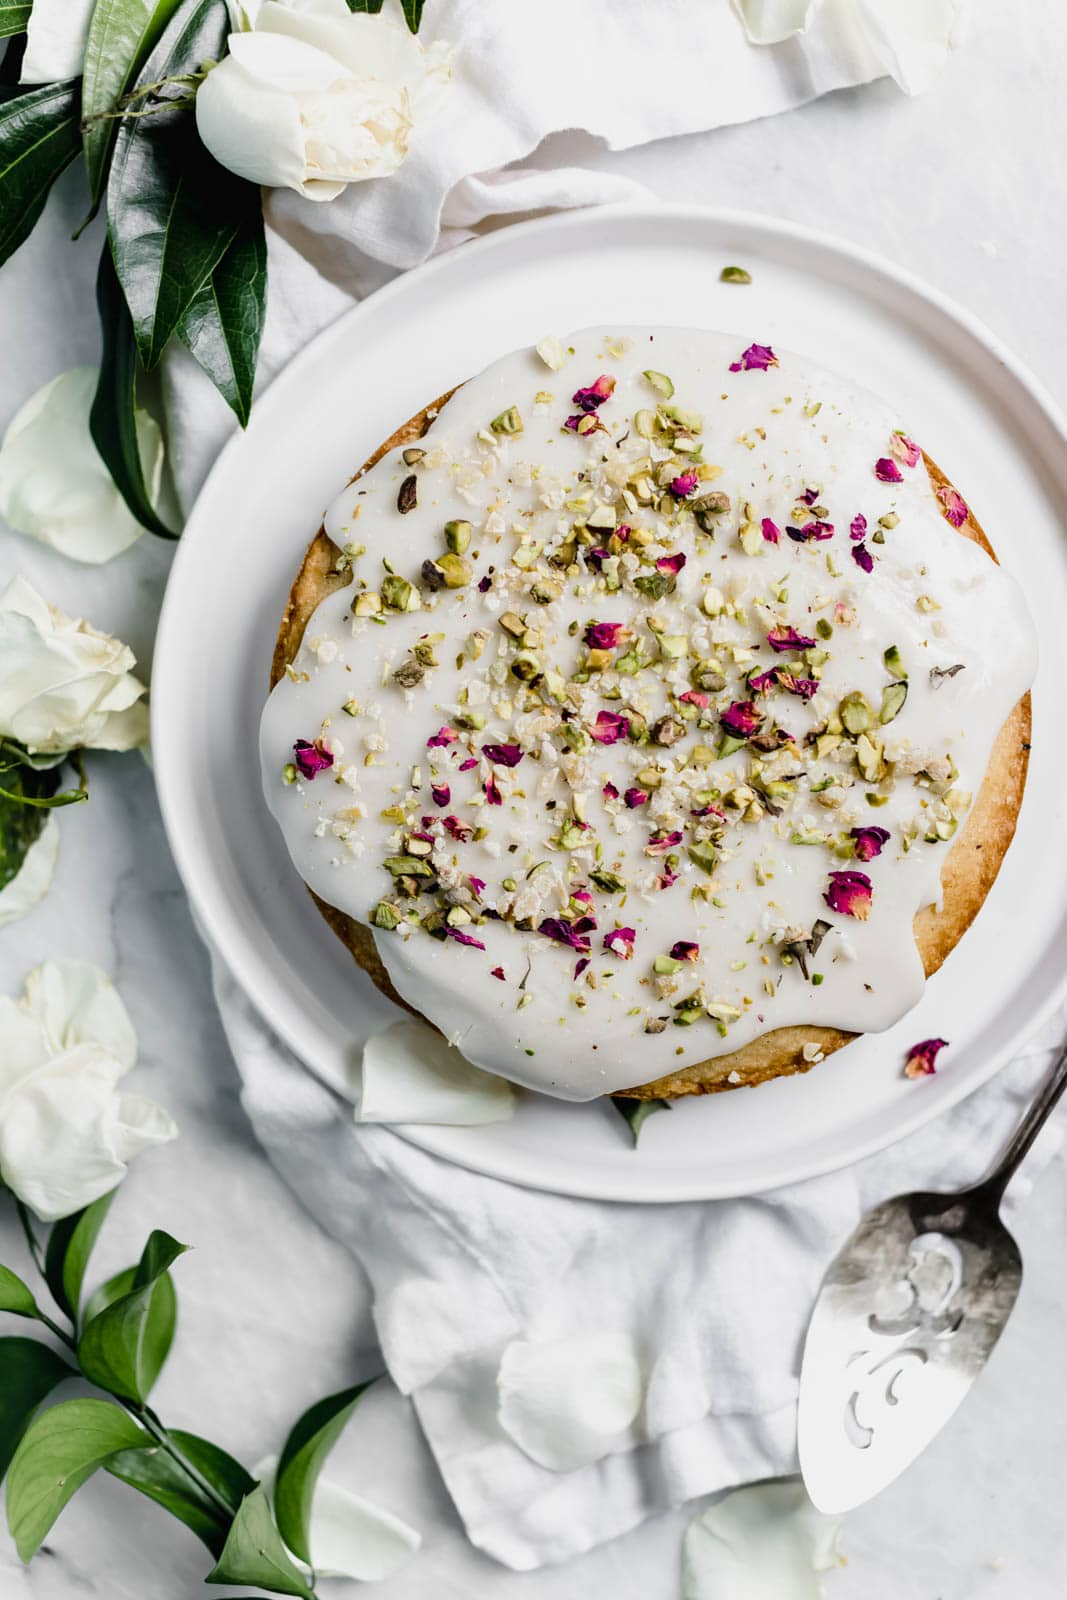 almond and rose cake on a plate